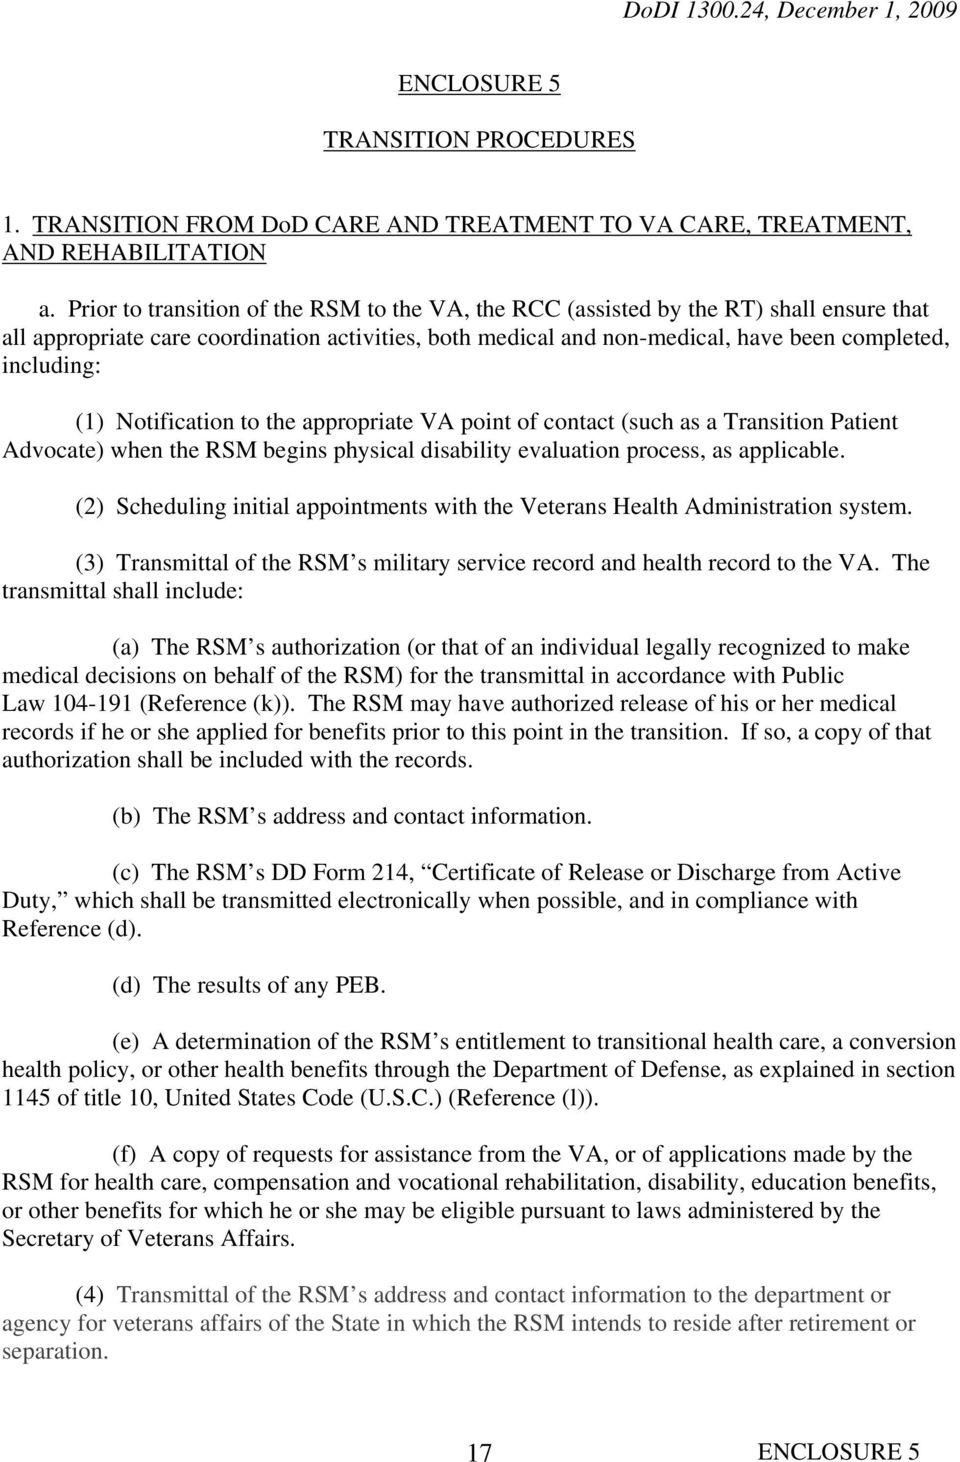 (1) Notification to the appropriate VA point of contact (such as a Transition Patient Advocate) when the RSM begins physical disability evaluation process, as applicable.